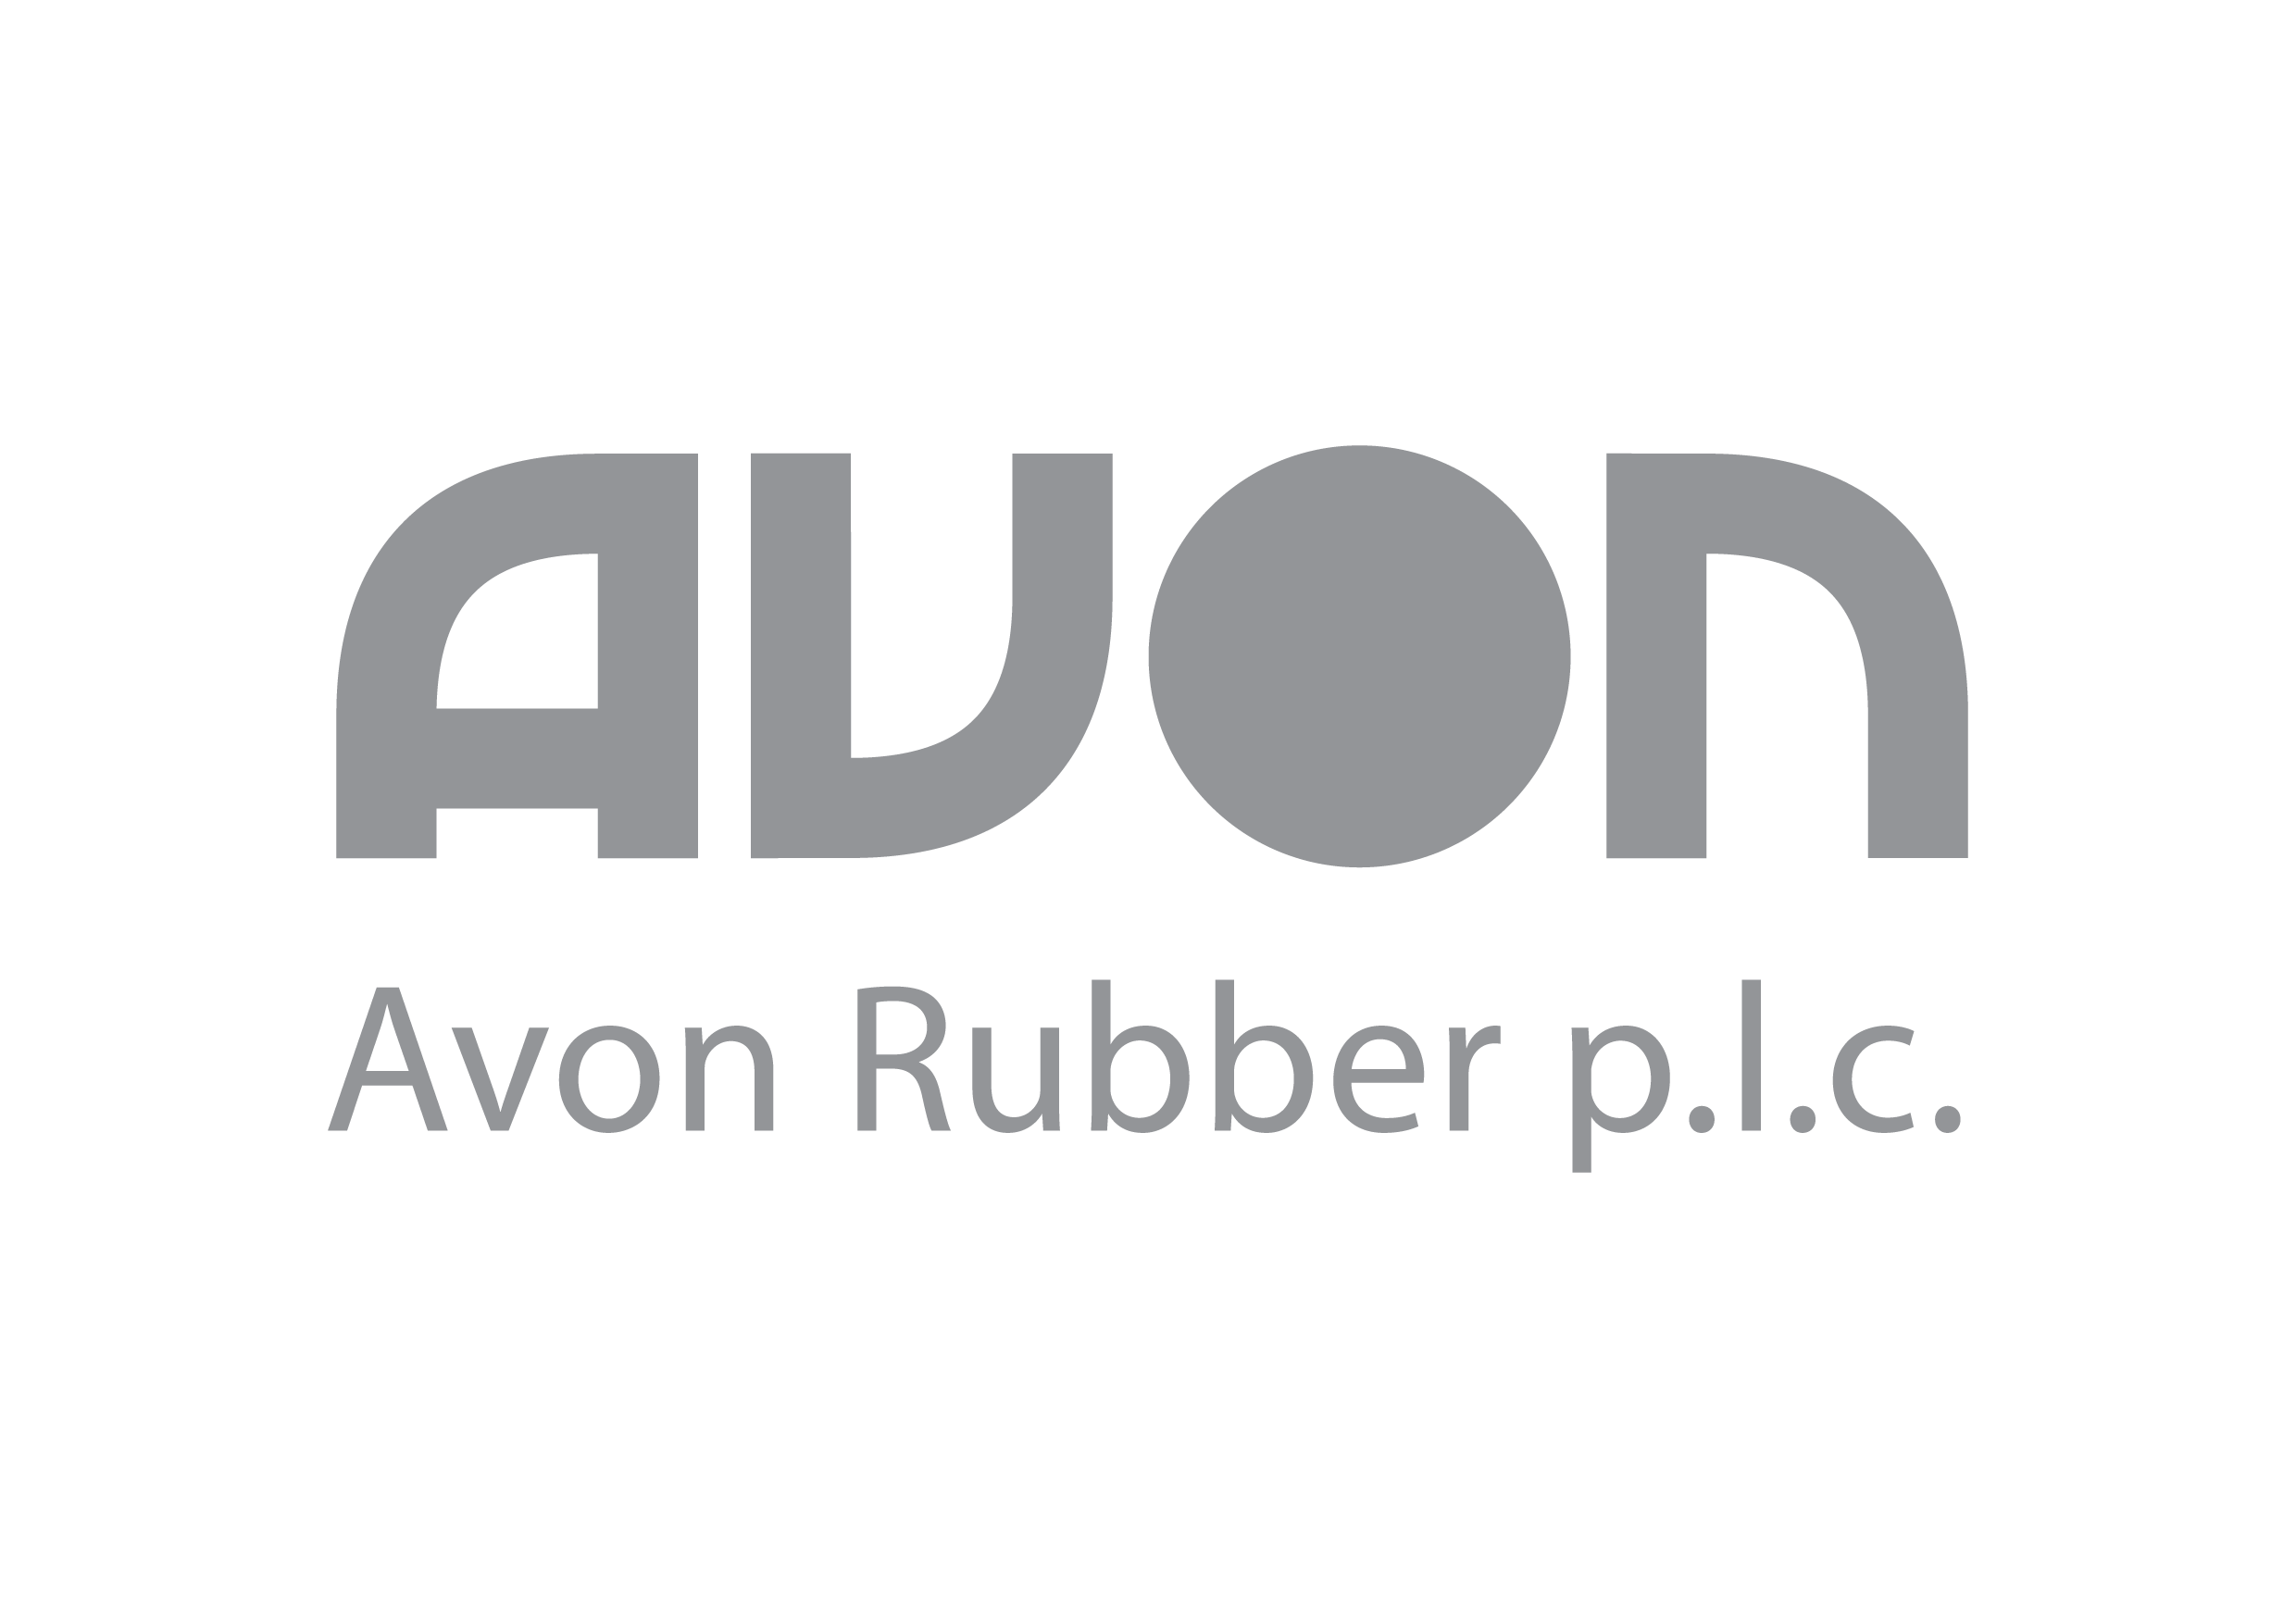 Avon Rubber increases it 2018 final dividend by 30%